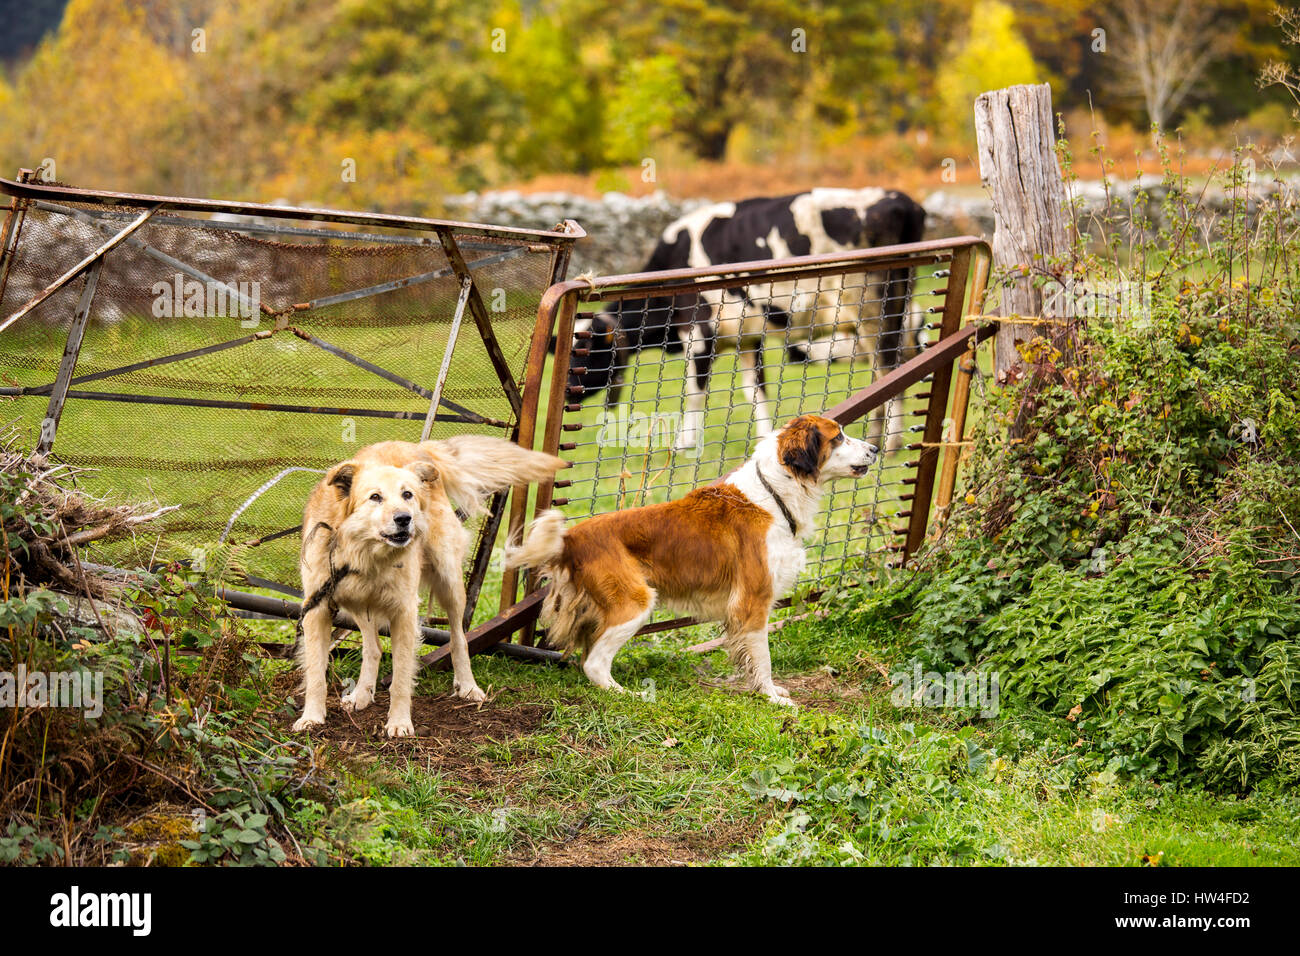 Dogs guarding the entrance to a farm. Las Machorras, Burgos. Castile and Leon Spain, Europe - Stock Image